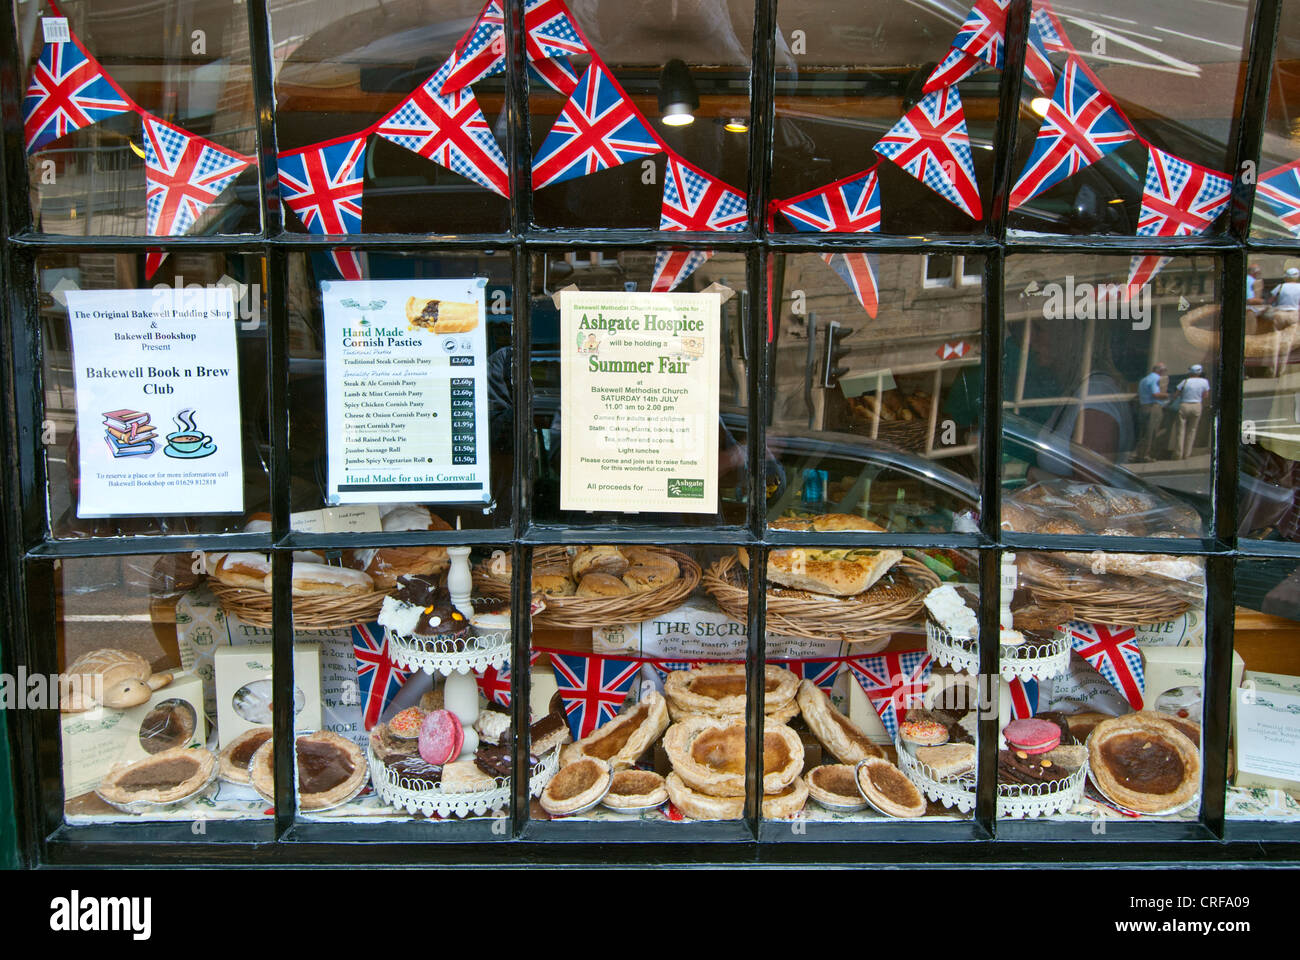 Display of Bakewell Puddings - Stock Image